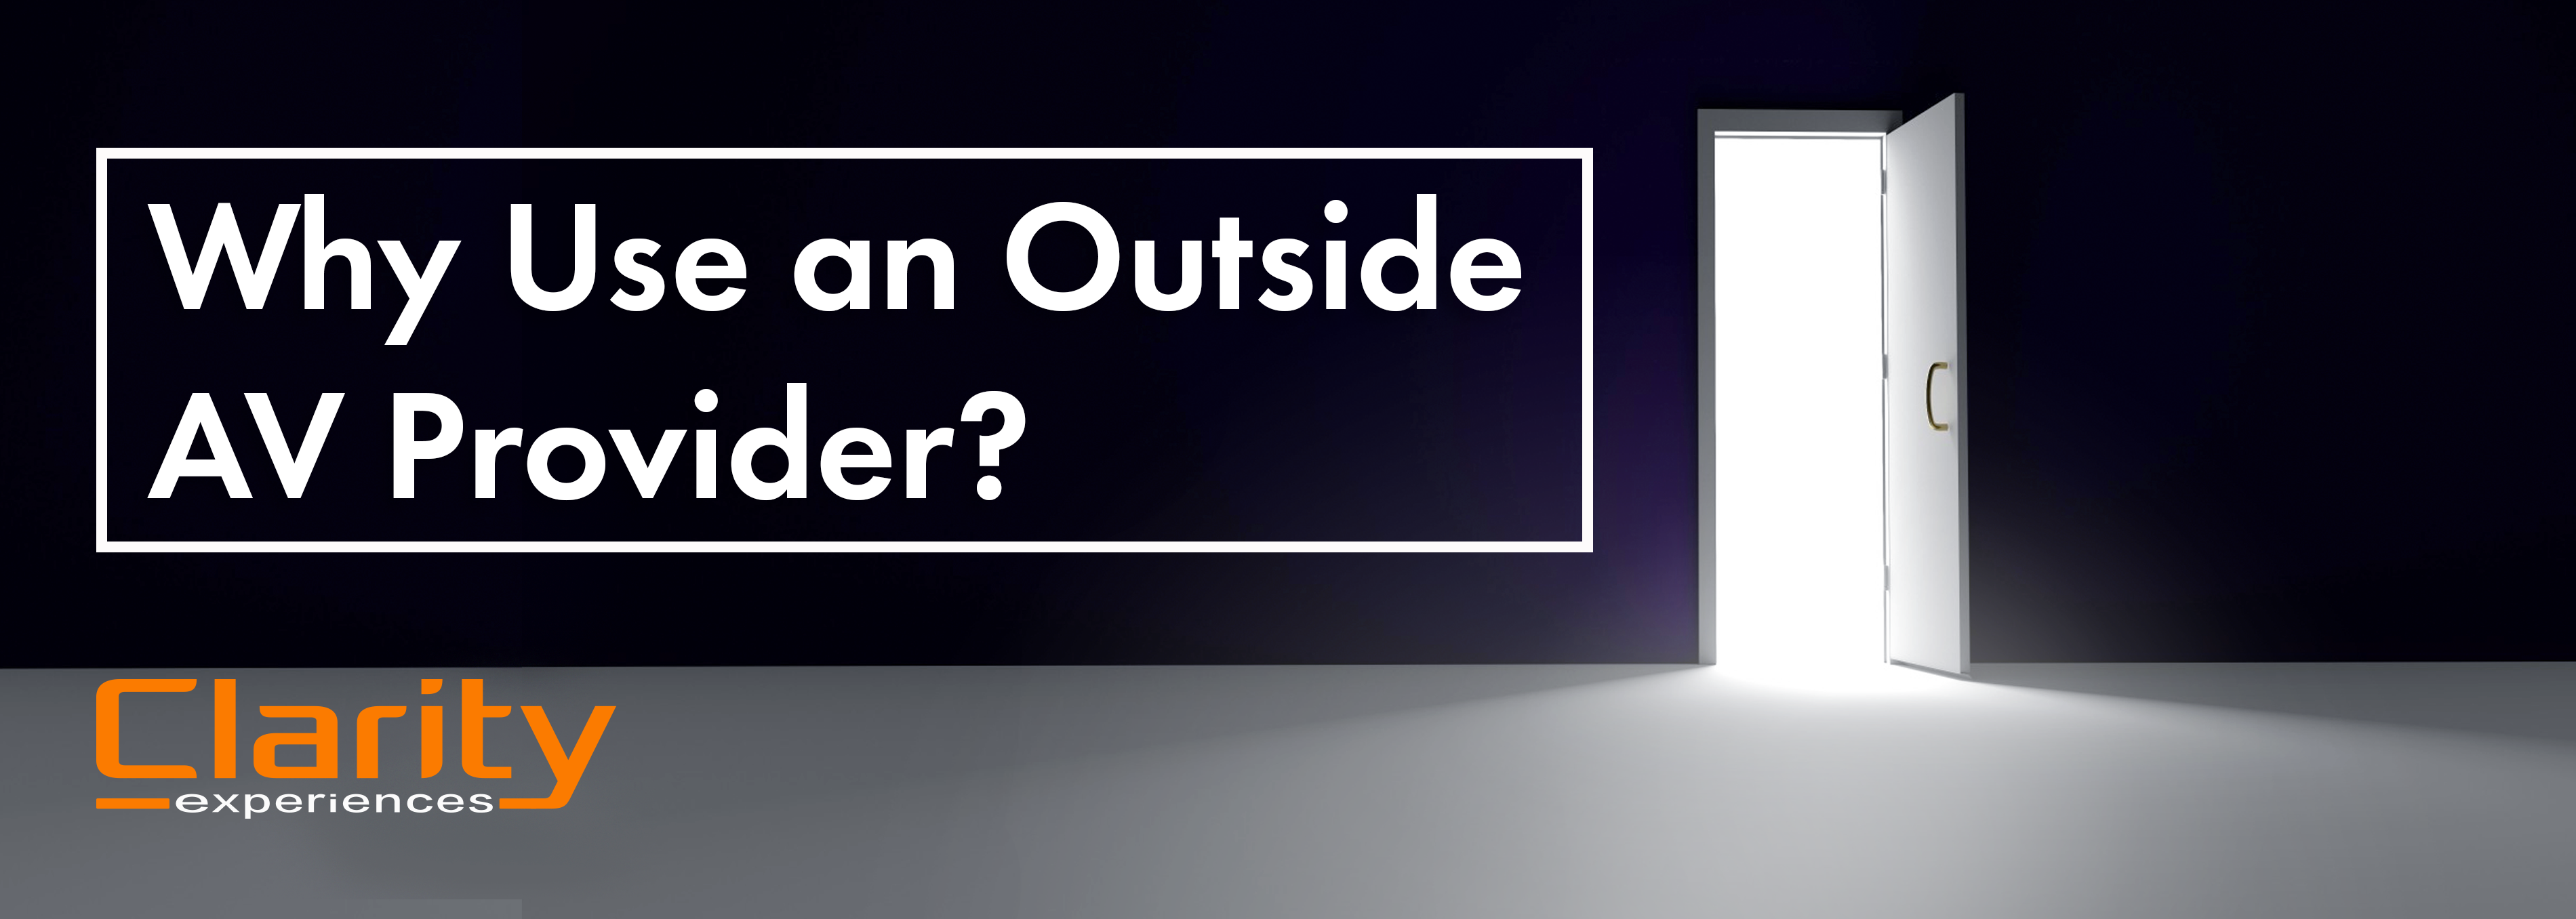 Why Use an Outside Audio Visual Provider | Clarity Experiences